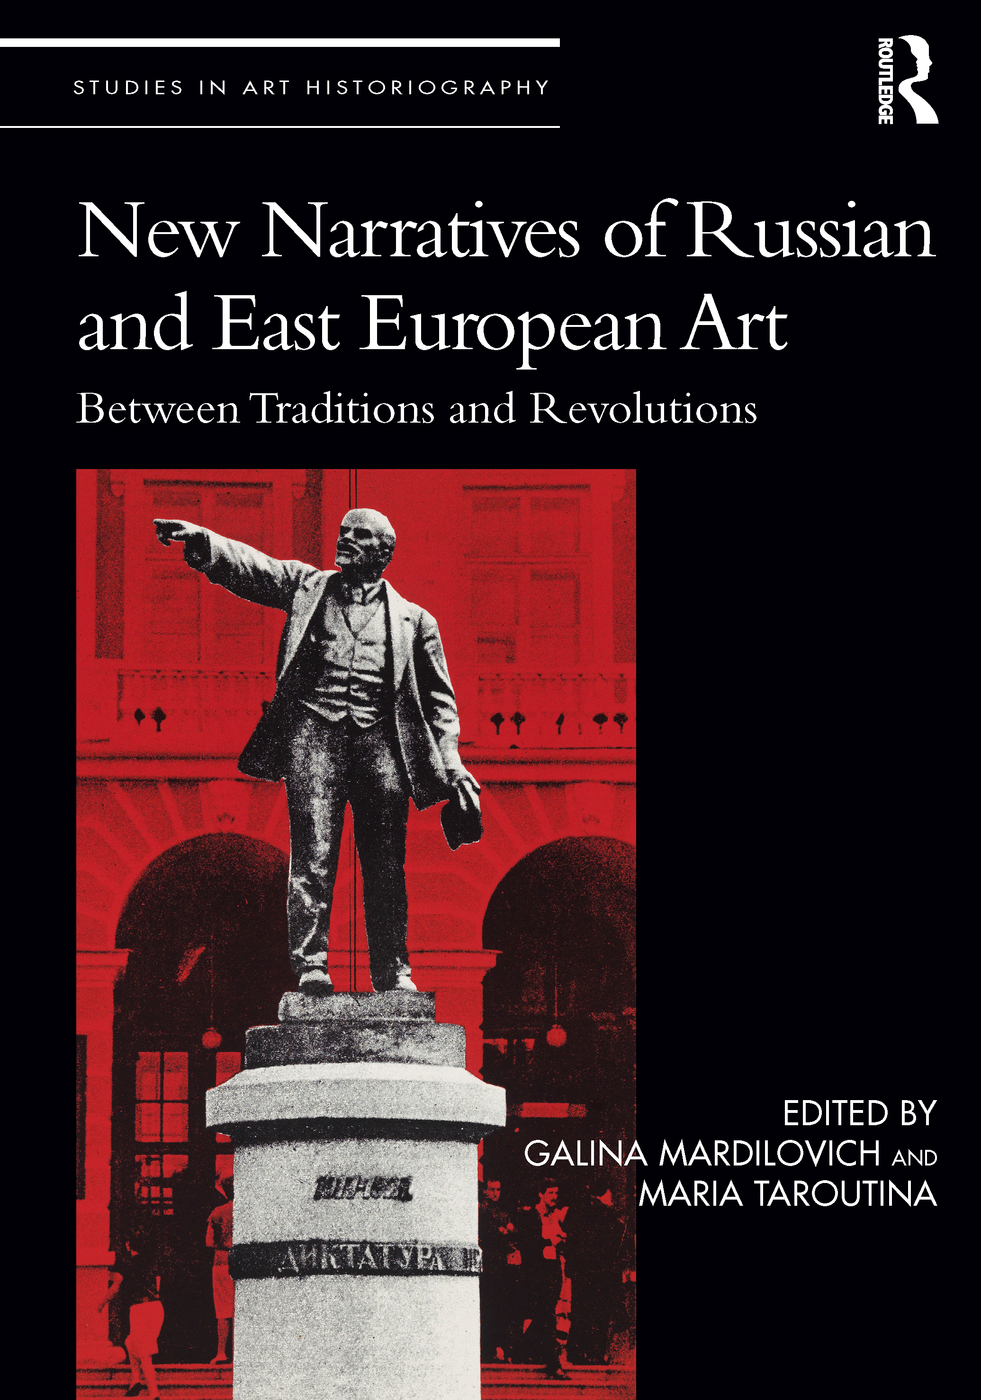 New Narratives of Russian and East European Art: Between Traditions and Revolutions book cover